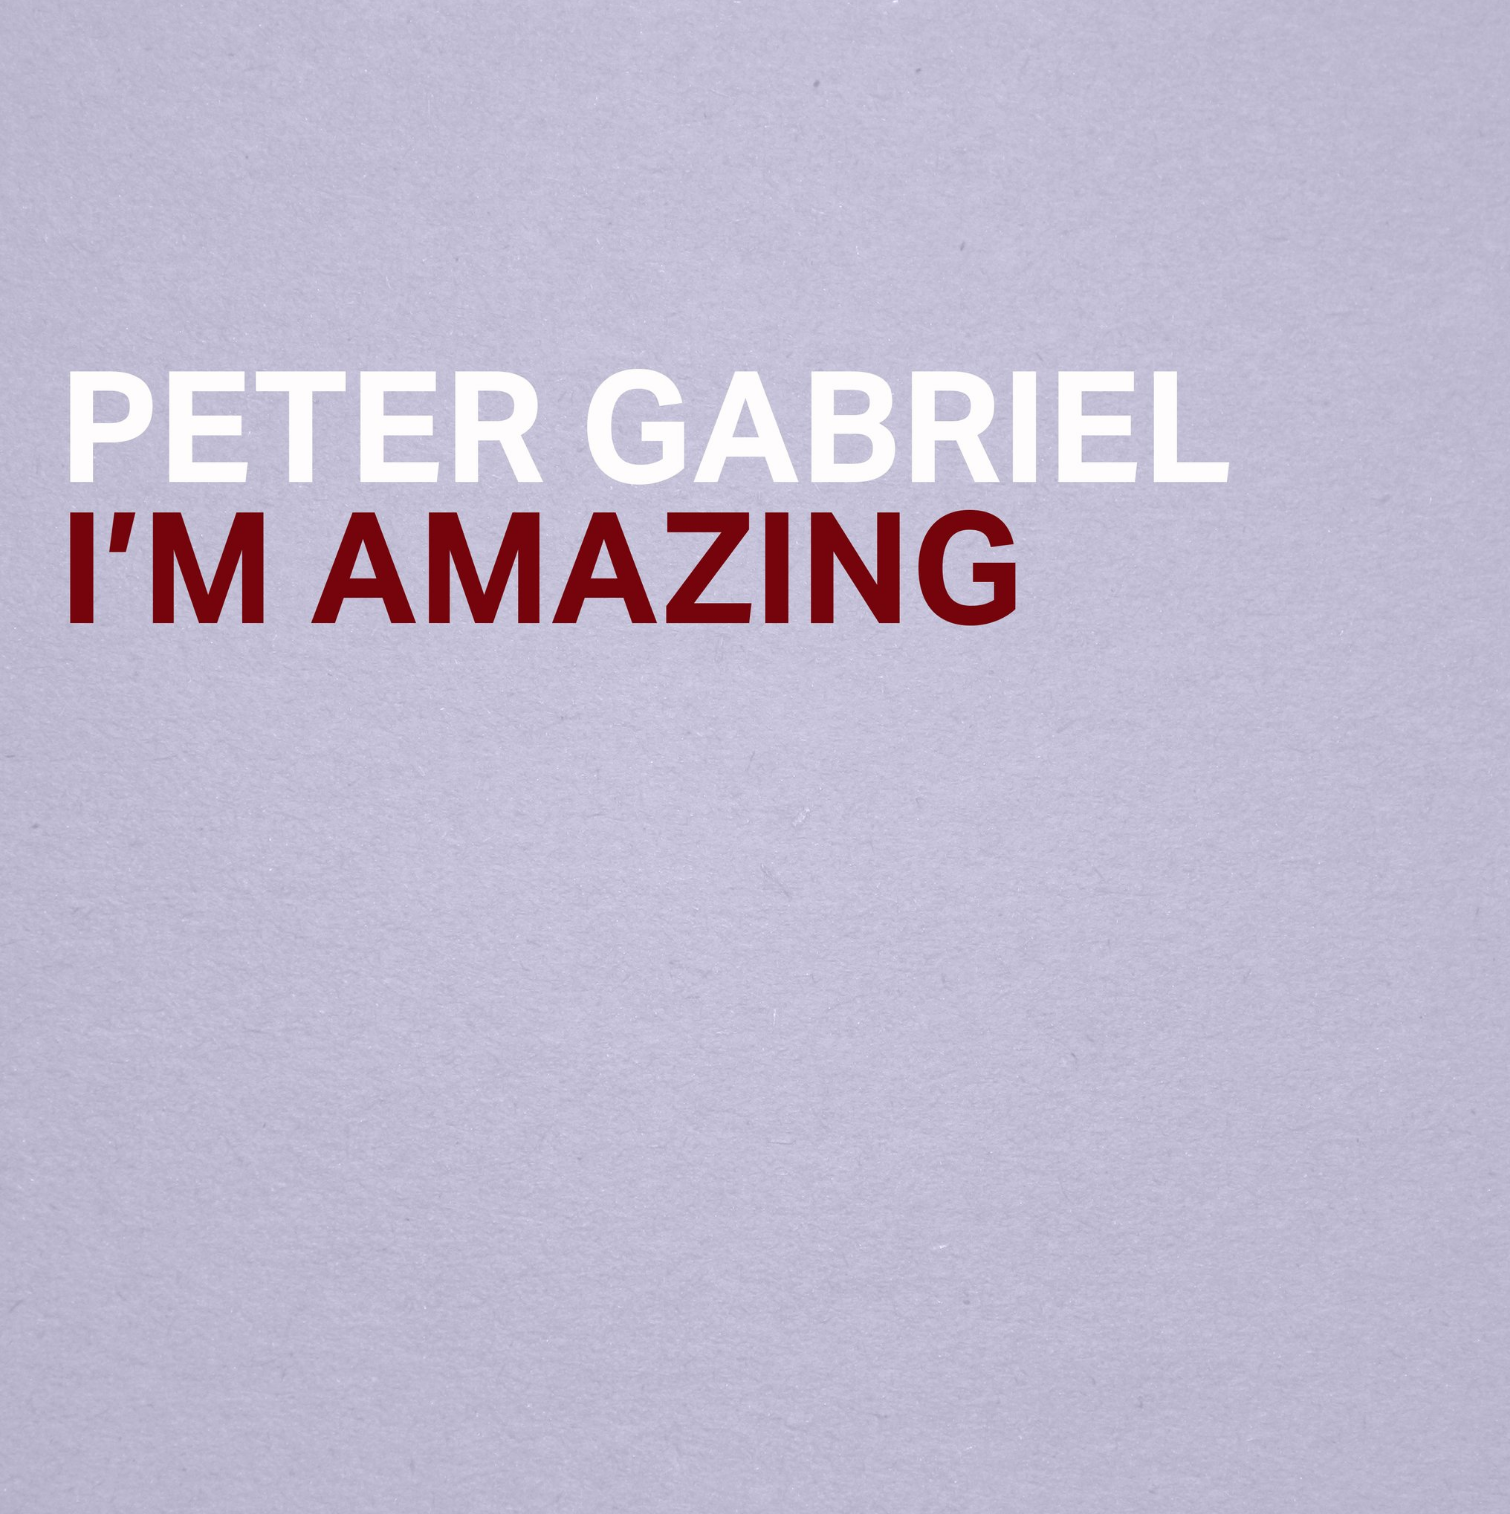 peter gabriel im amazing song muhammad ali Peter Gabriel shares new song Im Amazing, inspired by Muhammad Ali    listen